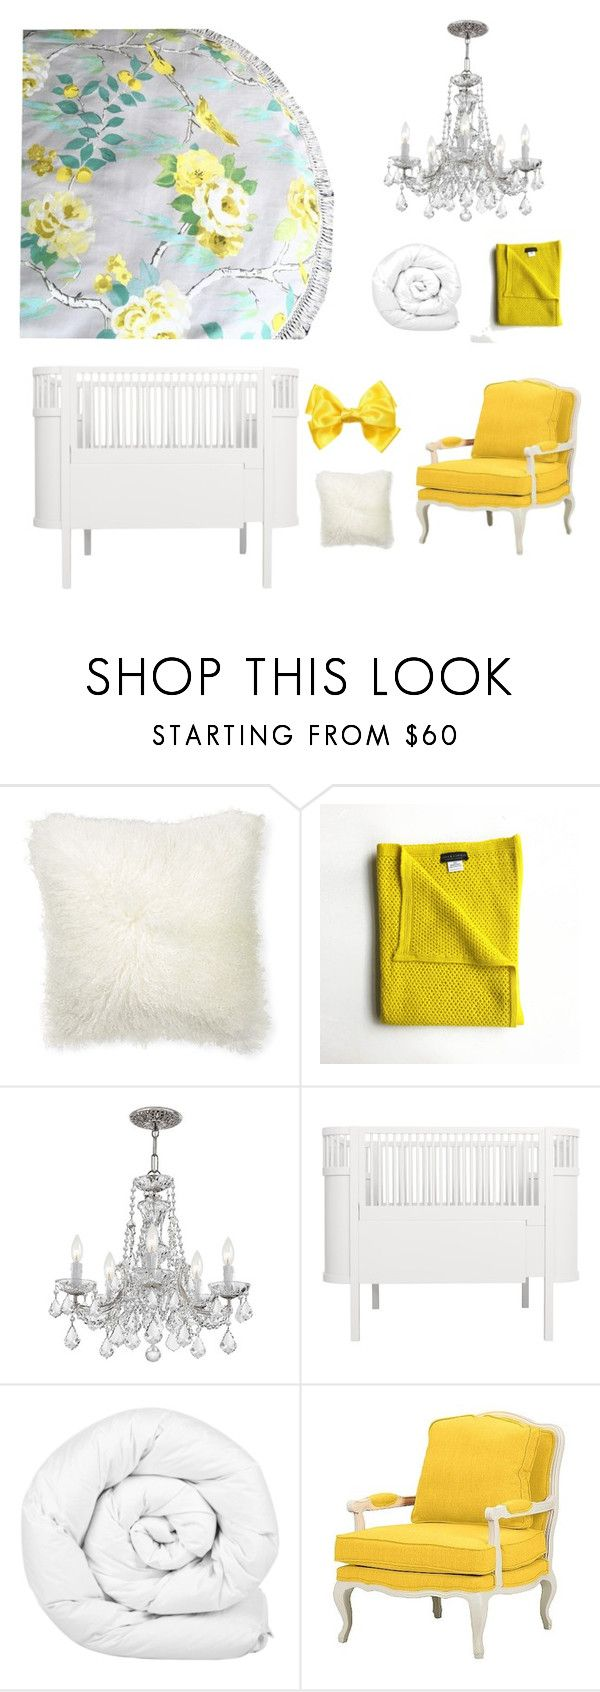 """Yellow Canary Play Mat"" by styled-by-olivia-grace on Polyvore featuring interior, interiors, interior design, home, home decor, interior decorating, Williams-Sonoma, Sebra, Brinkhaus and Baxton Studio"